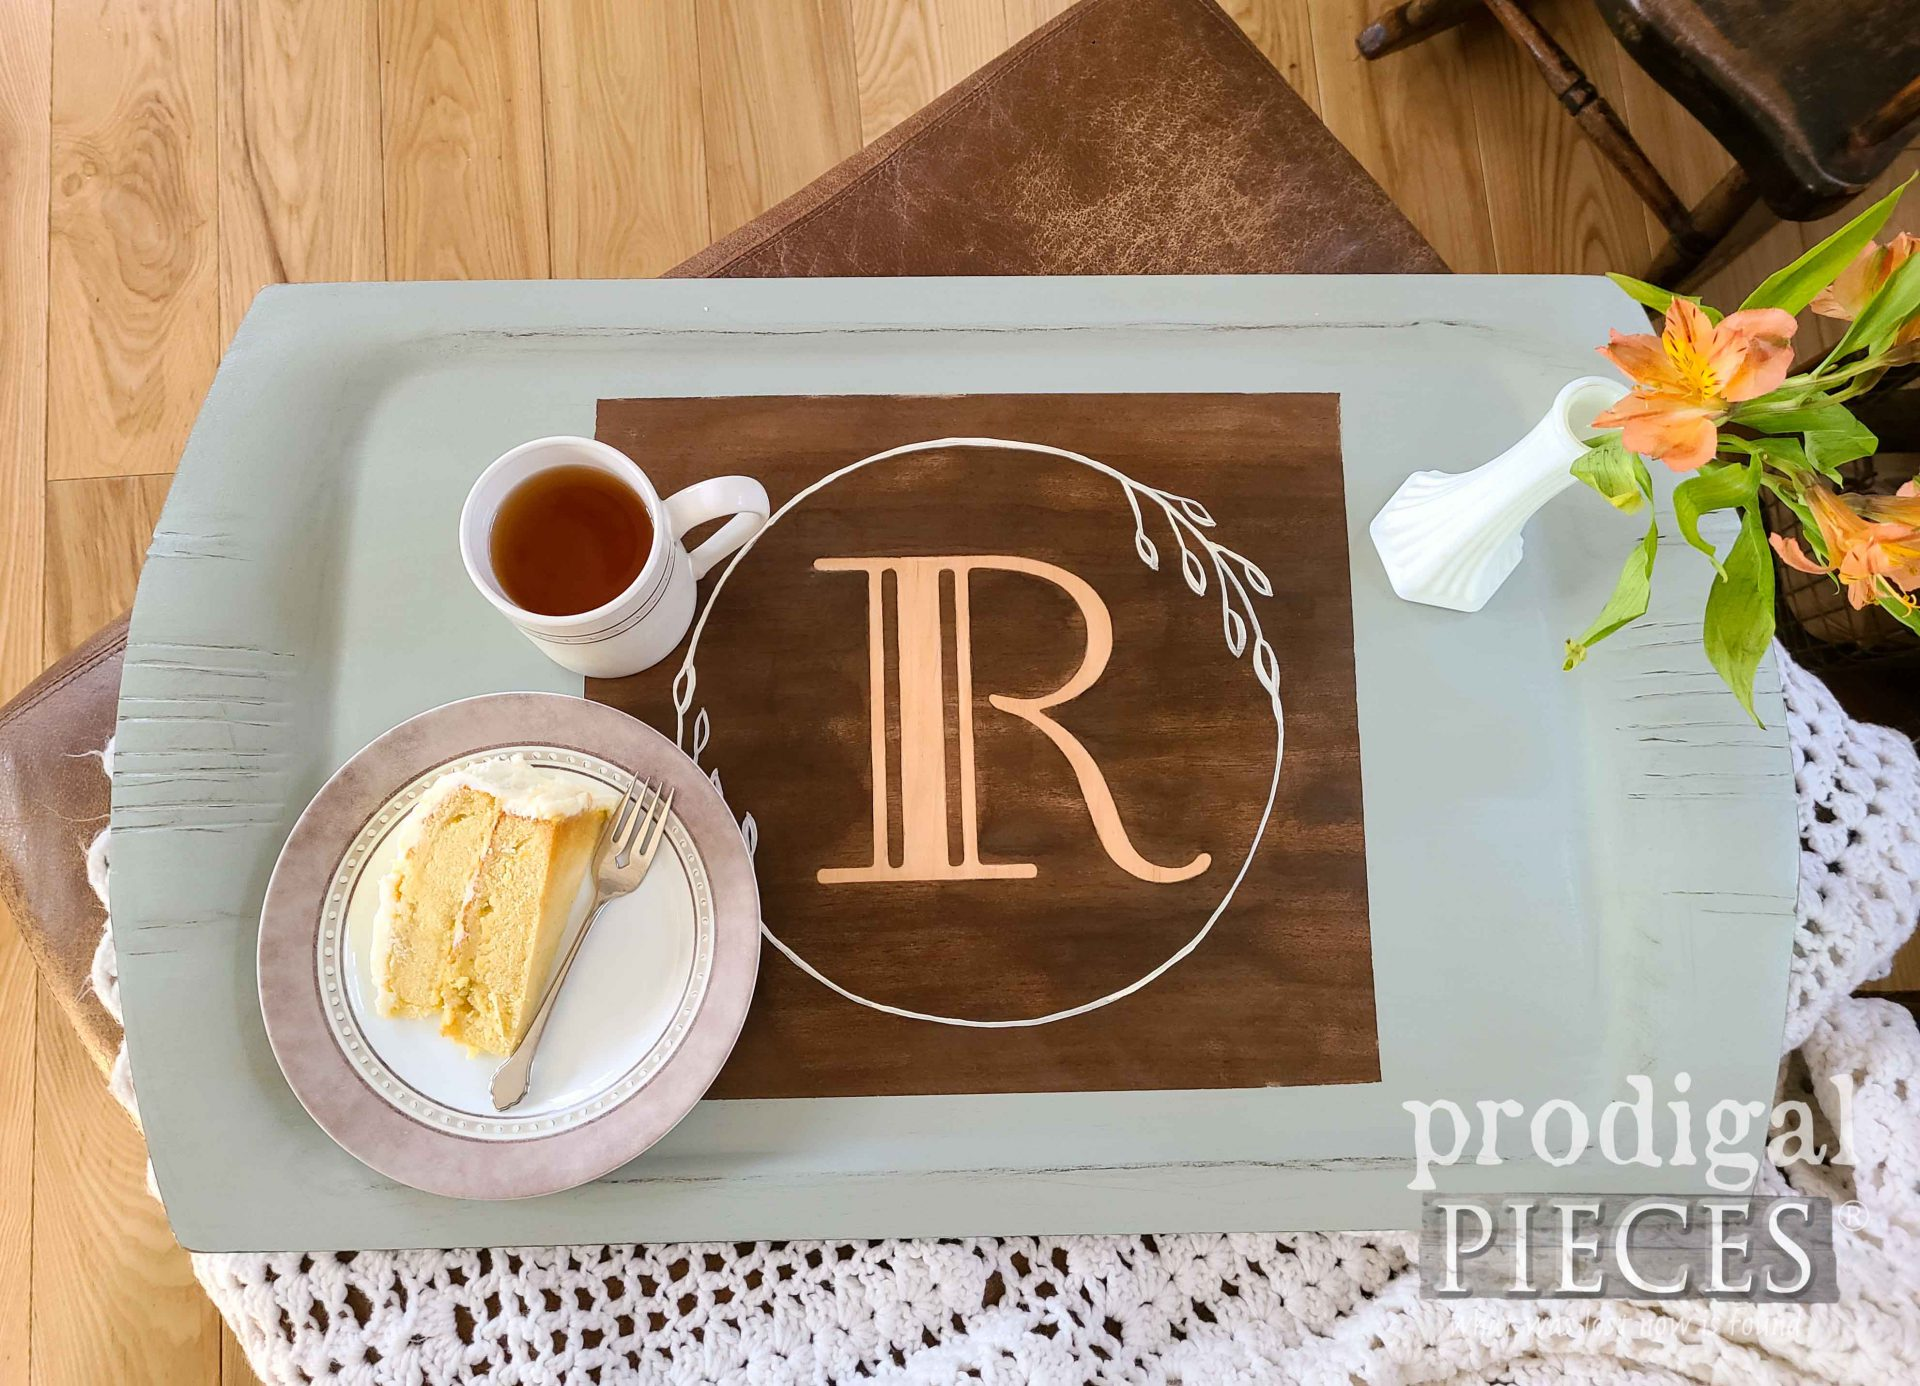 Vintage Monogram Wooden Tray by Prodigal Pieces | prodigalpieces.com #prodigalpieces #diy #vintage #farmhouse #home